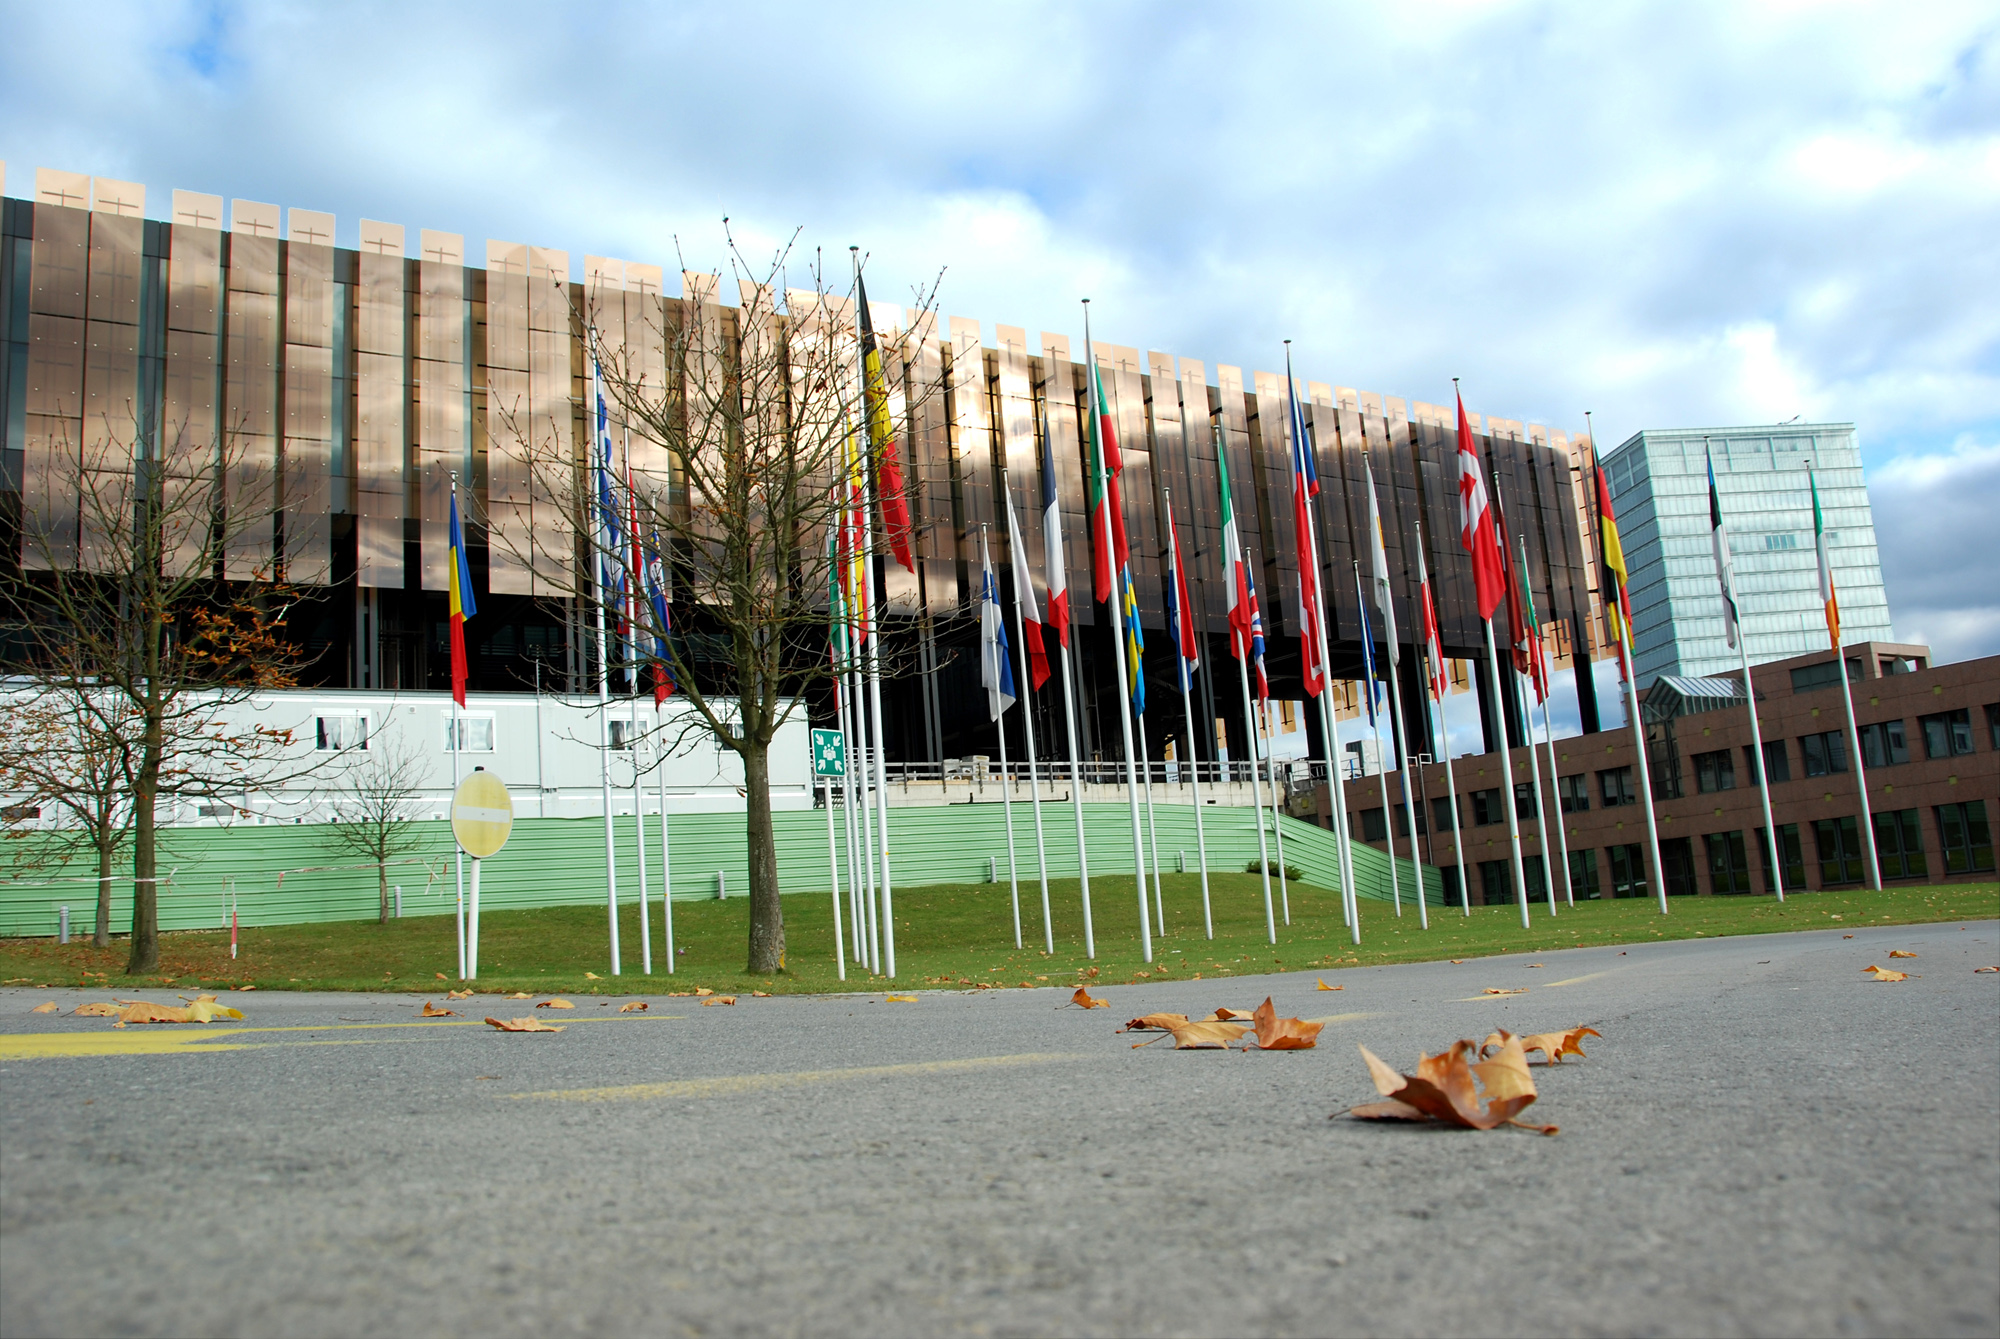 European_court_of_justice_in_luxembourg